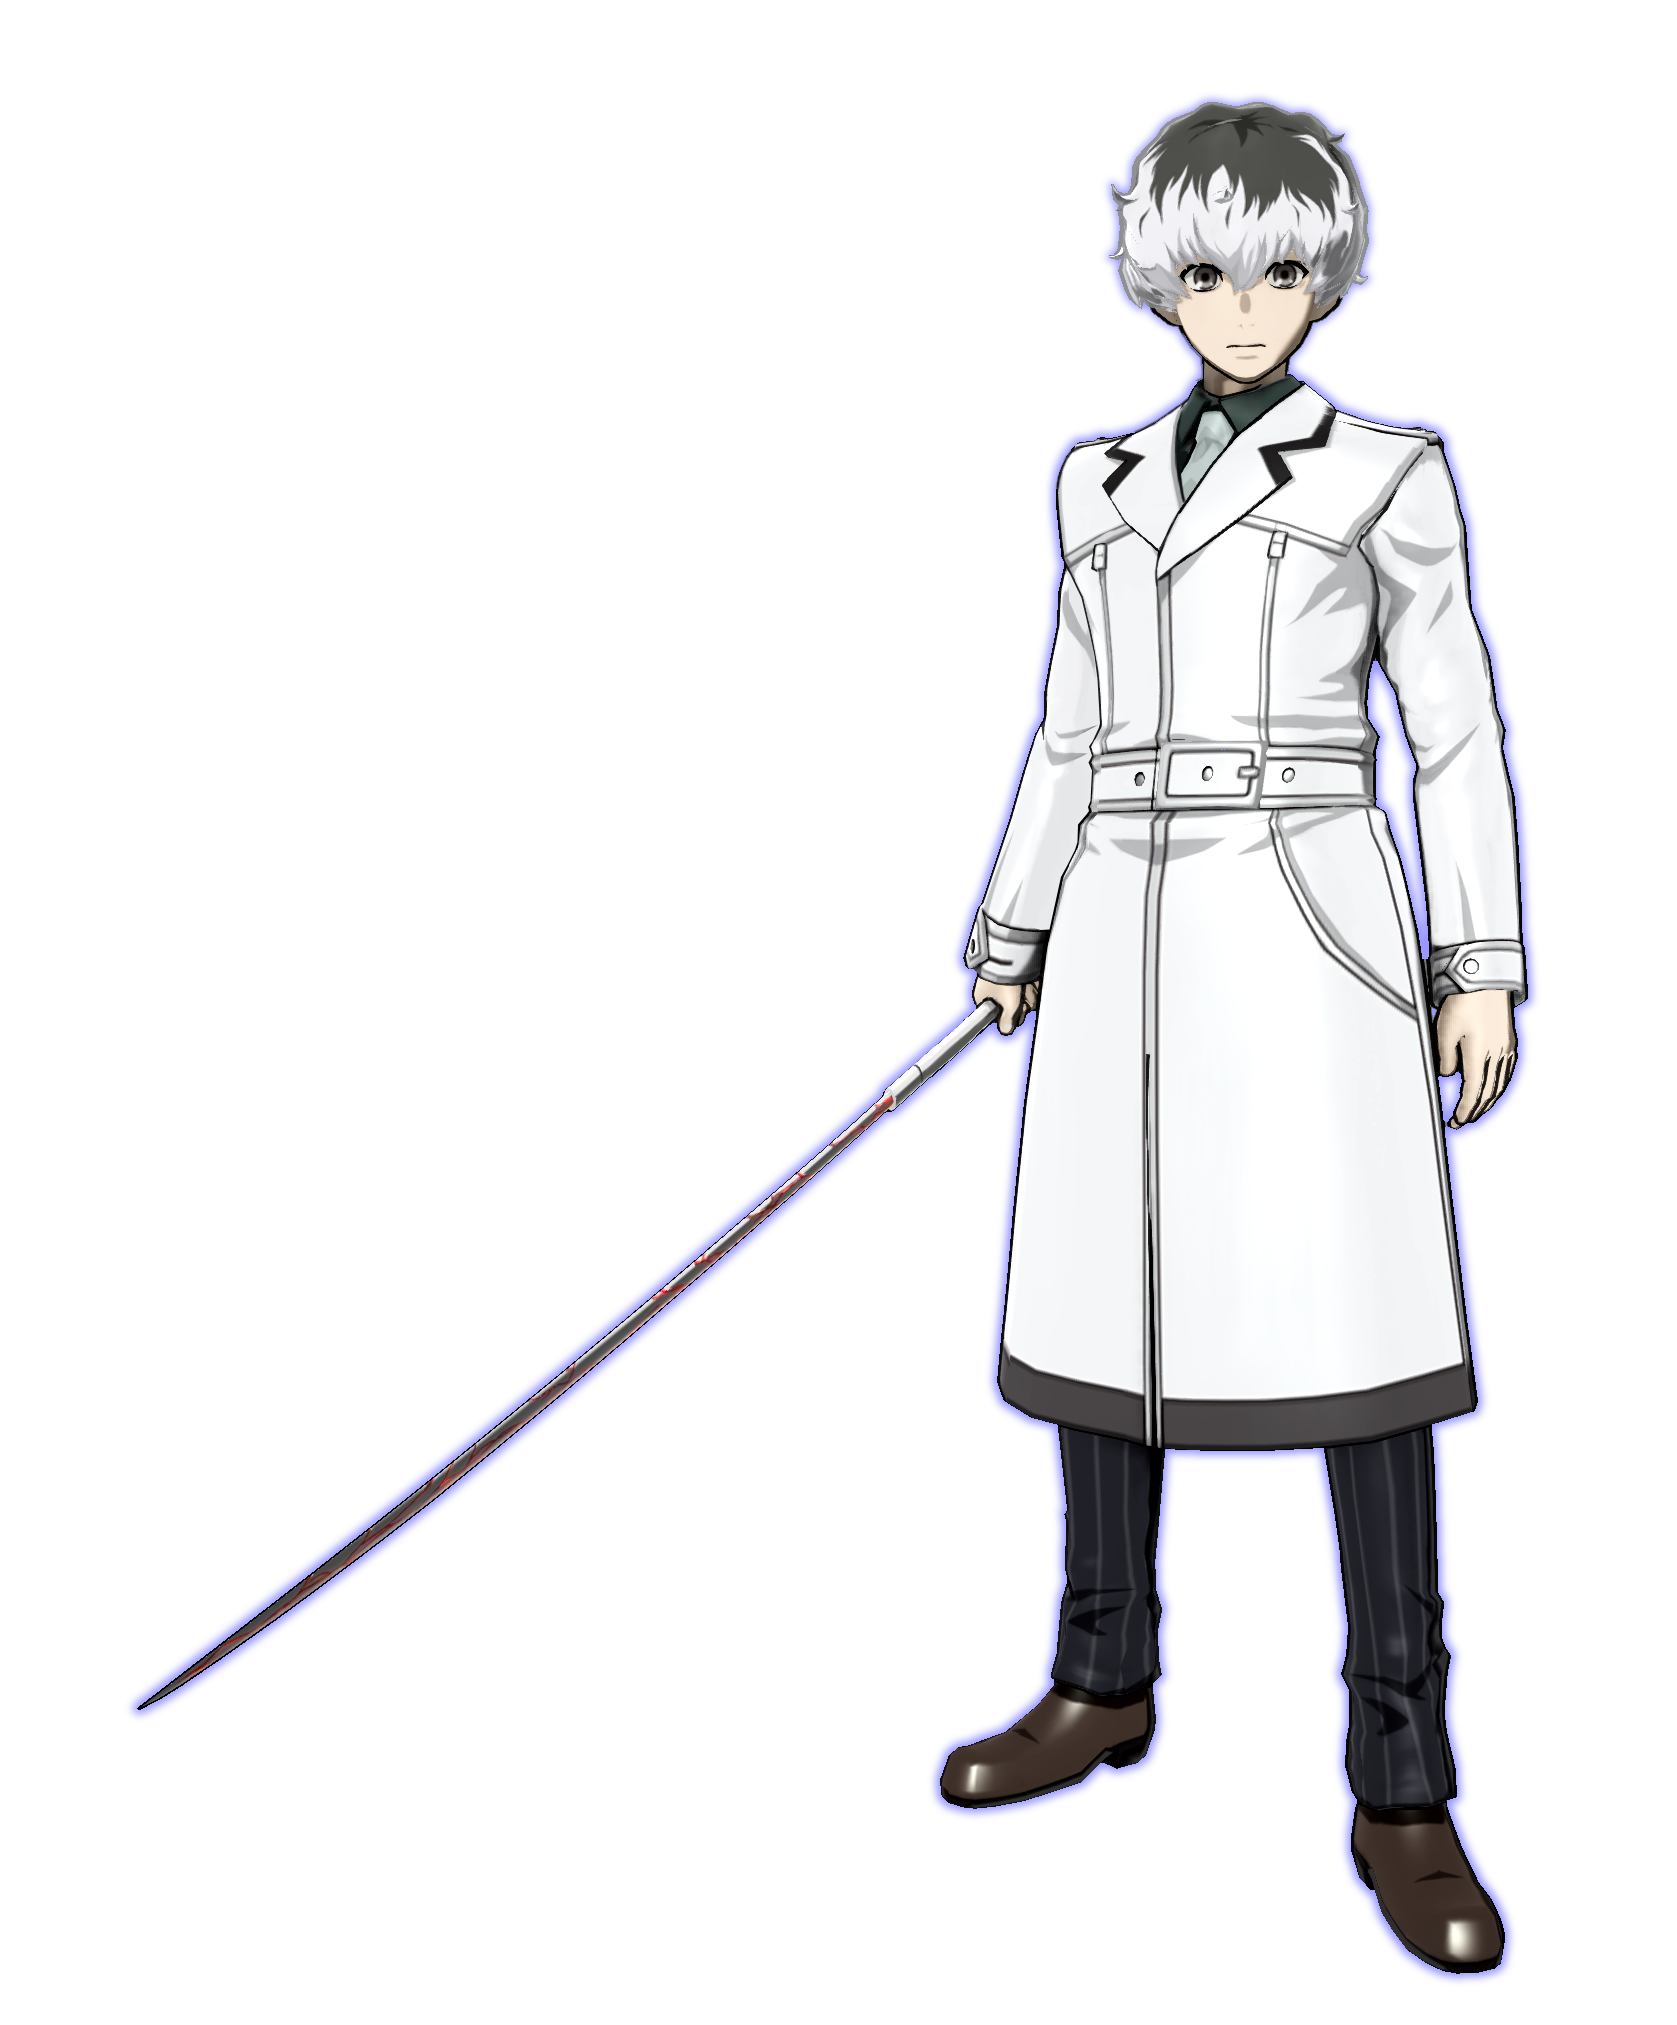 Tokyo Ghoul Re Call To Exist Render 1